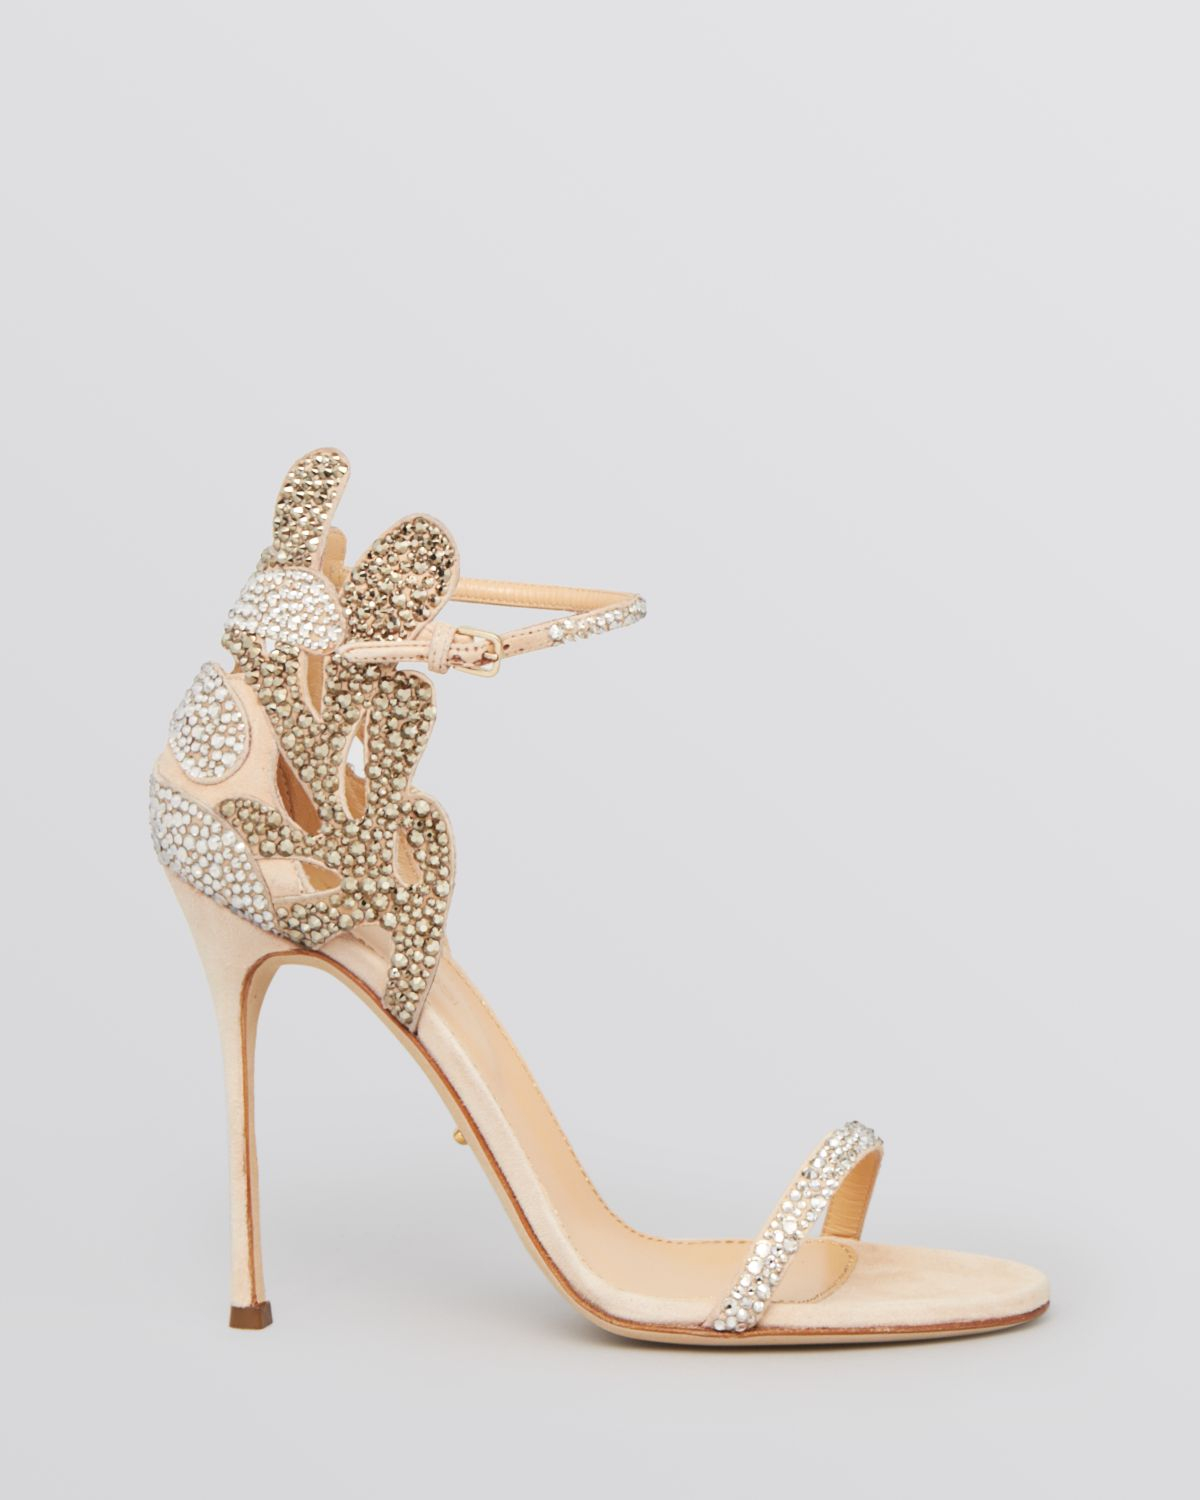 Sergio rossi Ankle Strap Evening Sandals - Matisse Filigree High